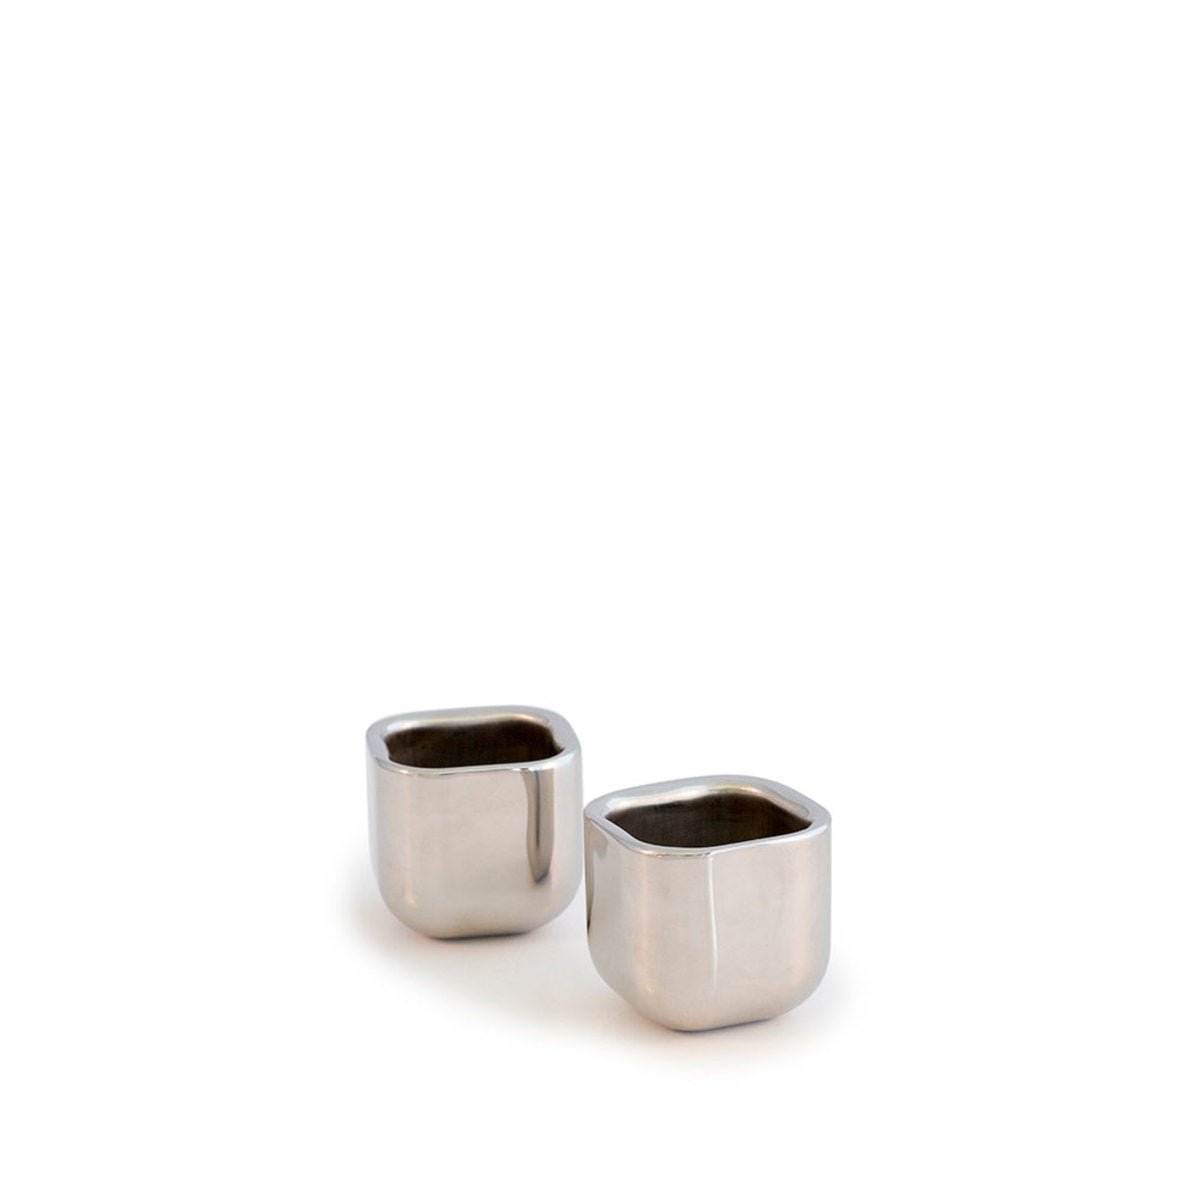 Stainless Steel Square Shot Glass, Set of 2